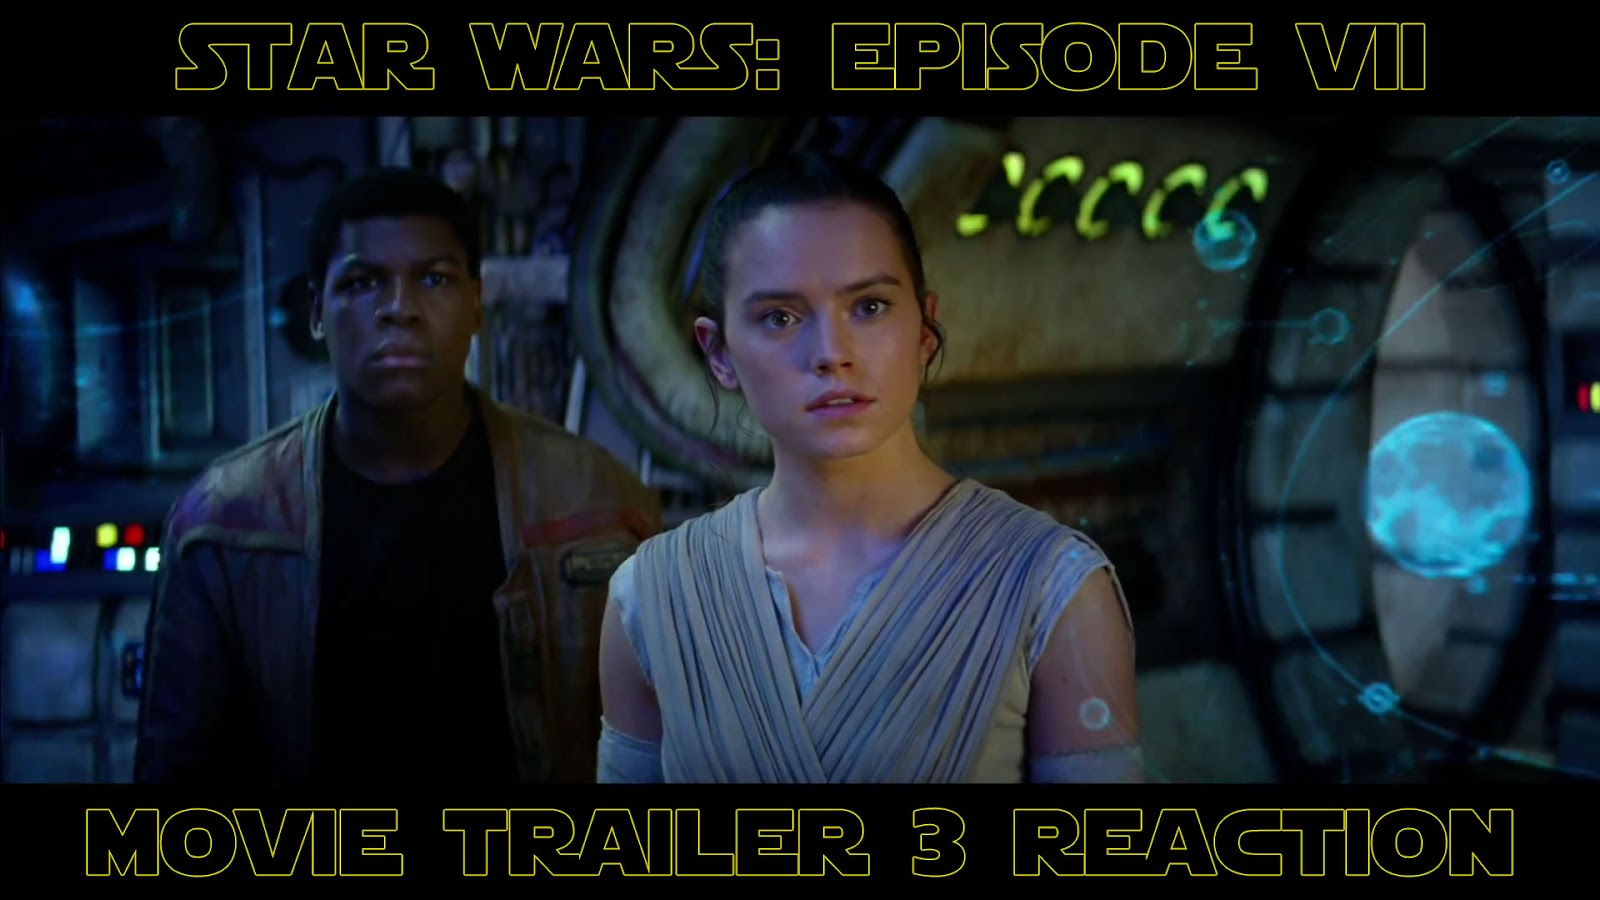 reaction to trailer for The Force Awakens Episode 7 Star Wars teaser #3